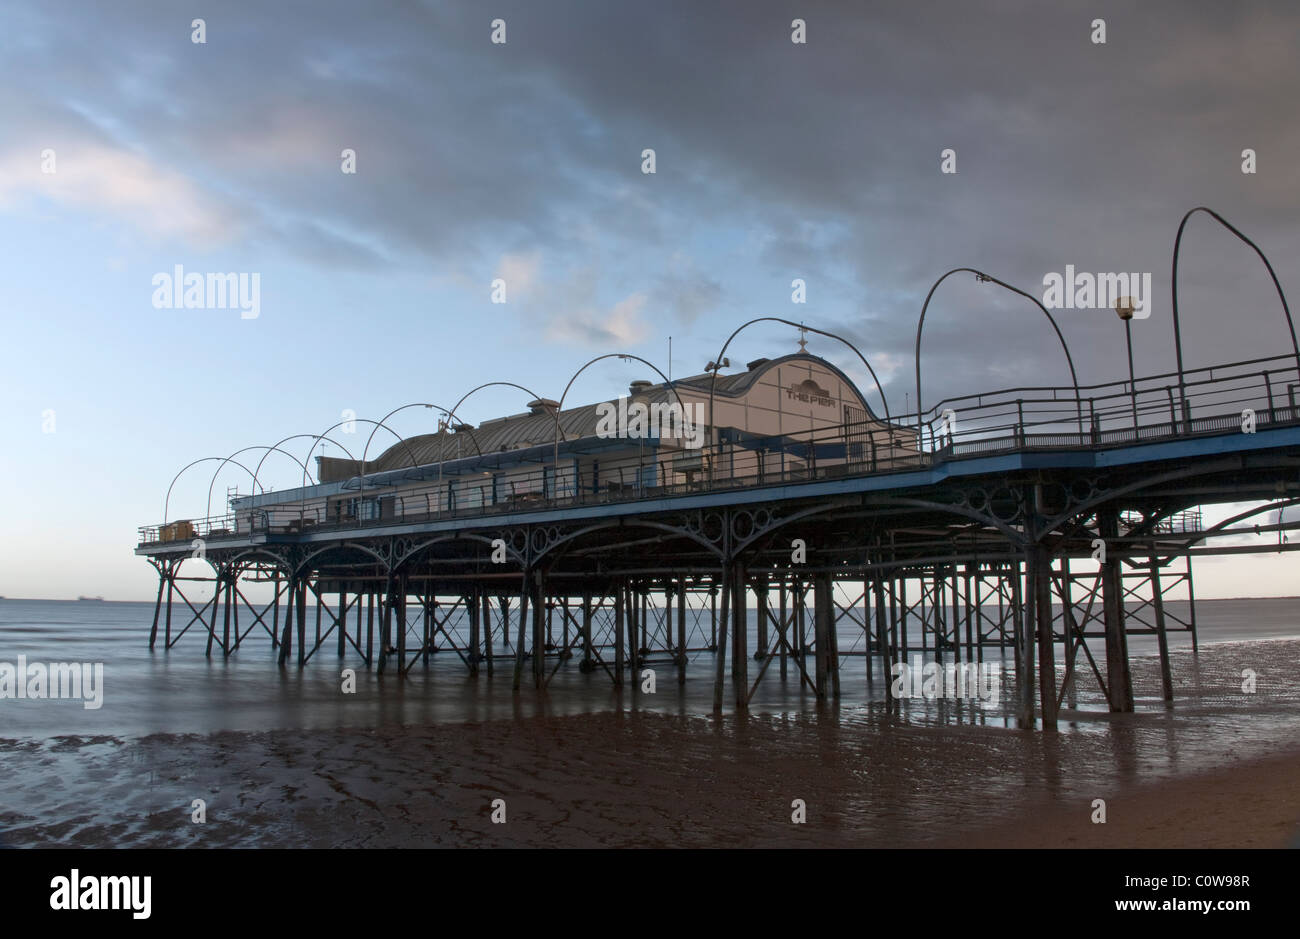 Cleethorpes Pier (slow exposure), North East Lincolnshire Feb 2011 - Stock Image